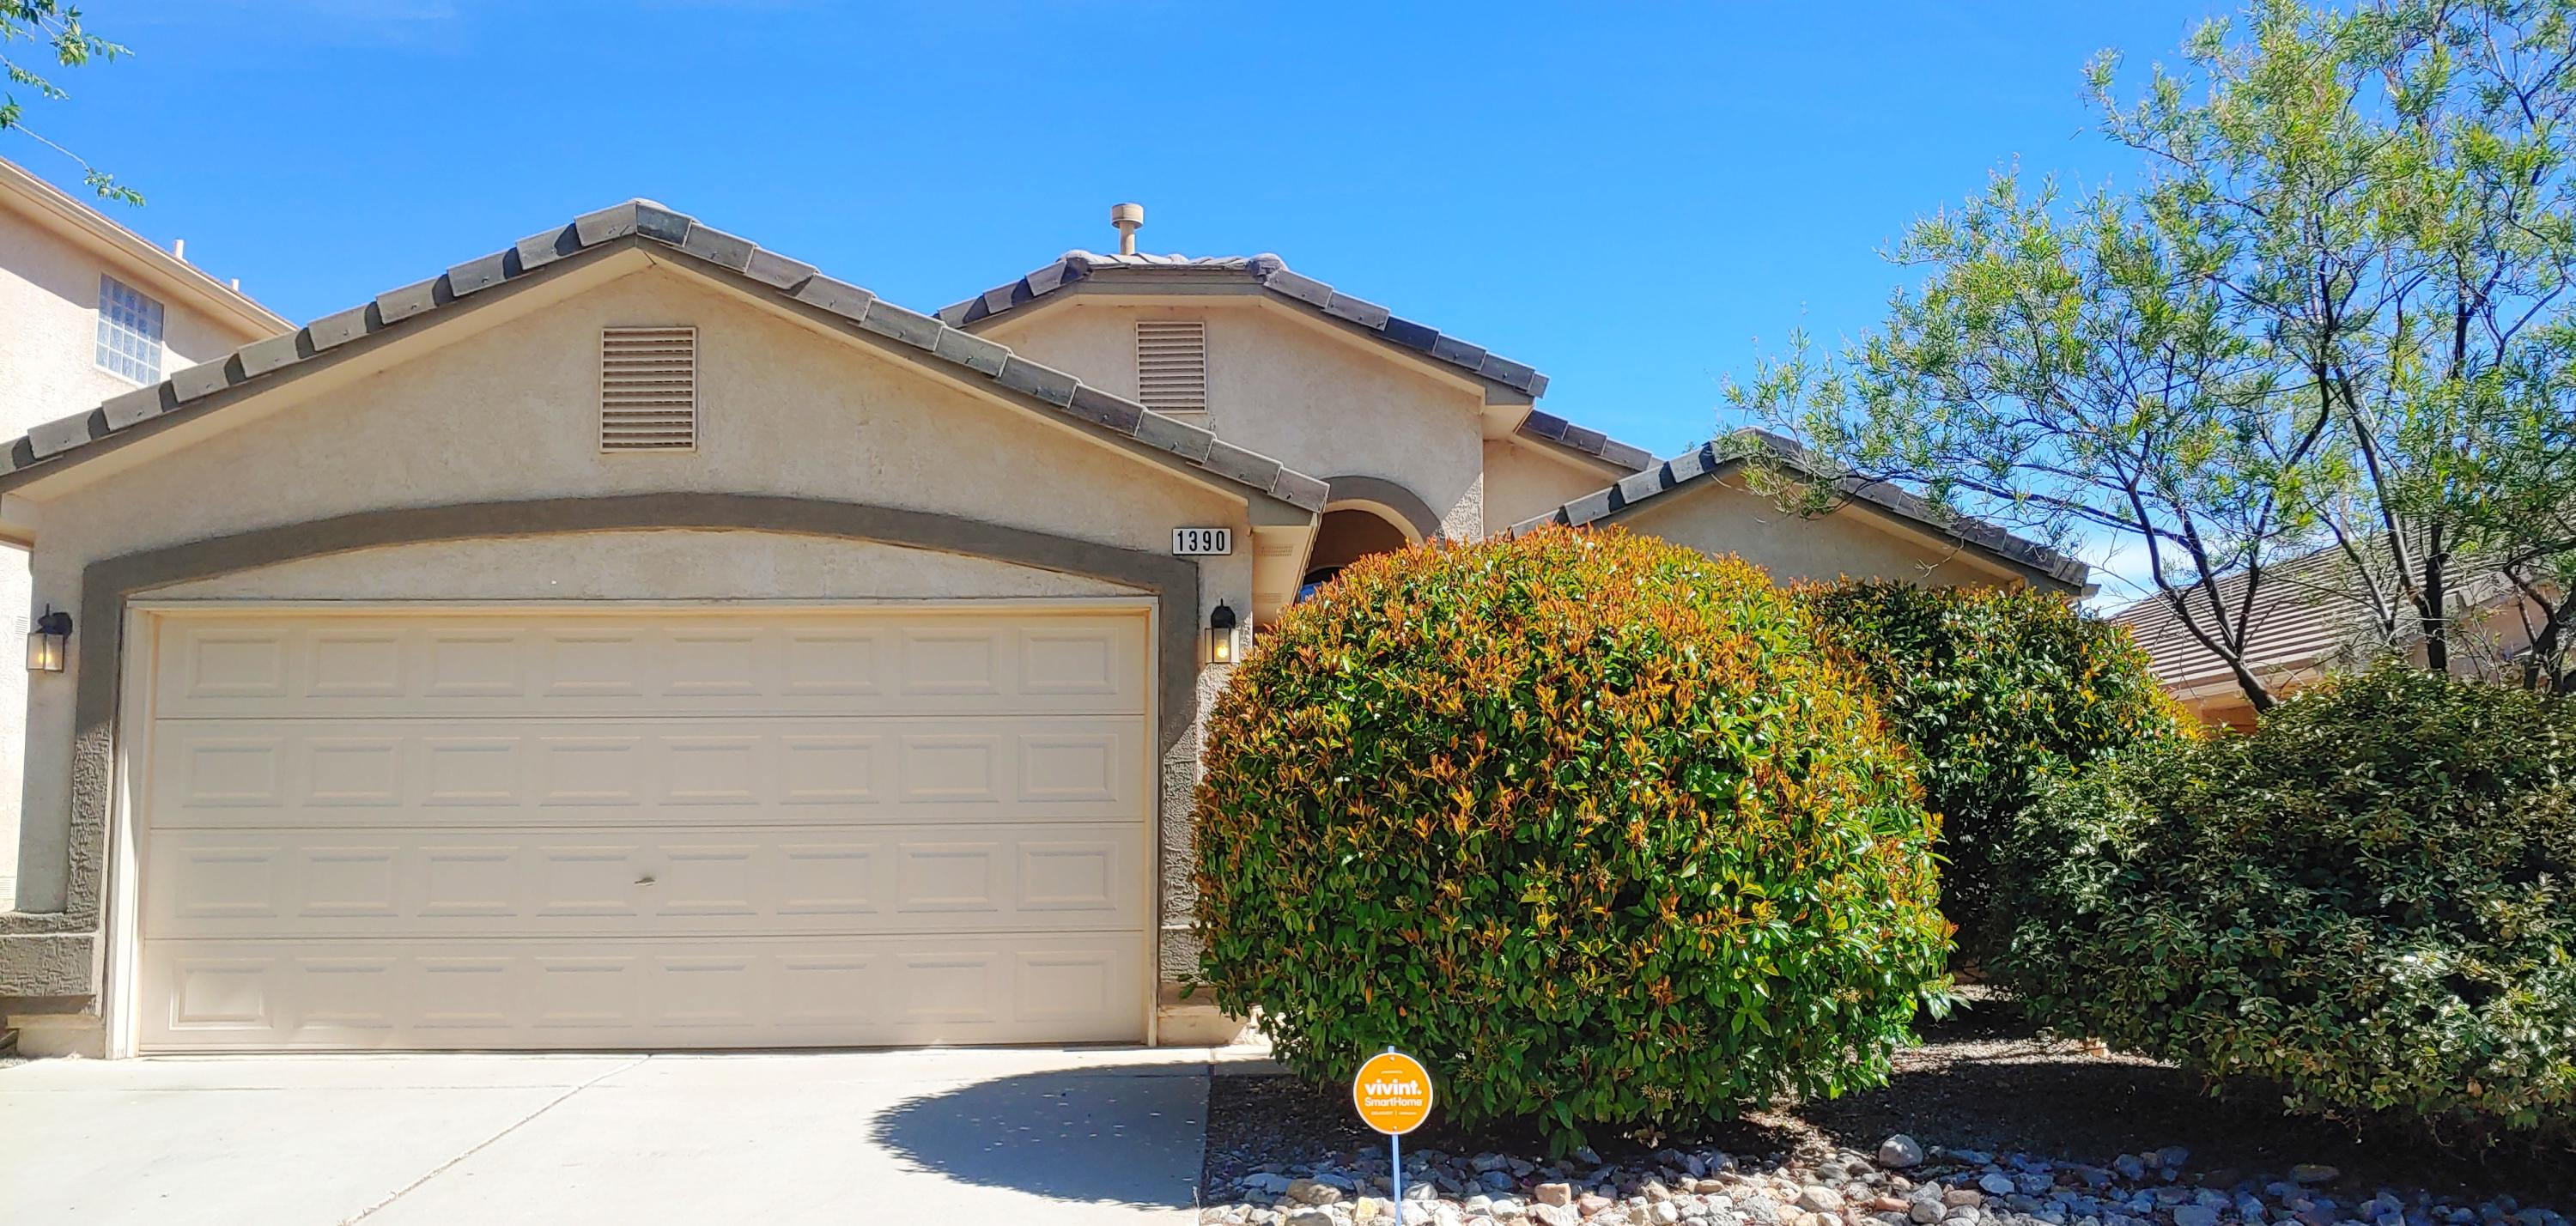 Well maintained 3 Bedroom/2 Car Garage home in Cabezon with new flooring in Great room, Hallway and Kitchen, new paint, updated light fixtures, raised ceilings, walk in closet, a bright home with simulated glass accents, blinds, covered patio. MUST SEE!